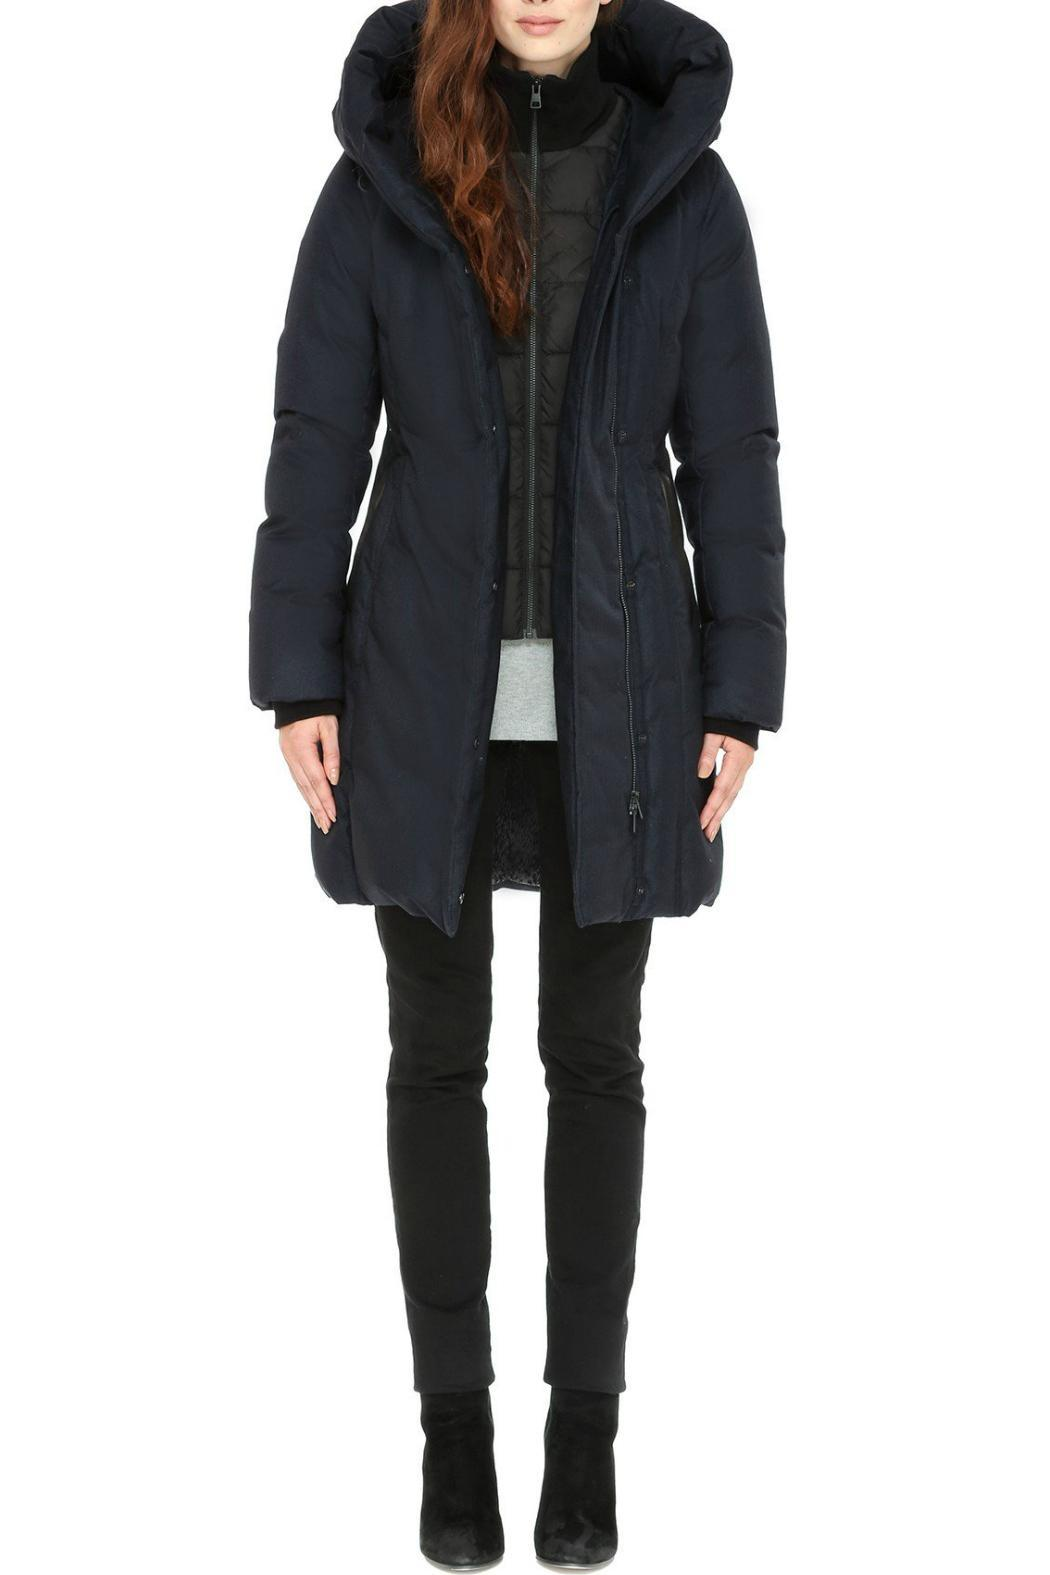 Soia & Kyo Camyl Down Coat from Toronto by Sense of ...